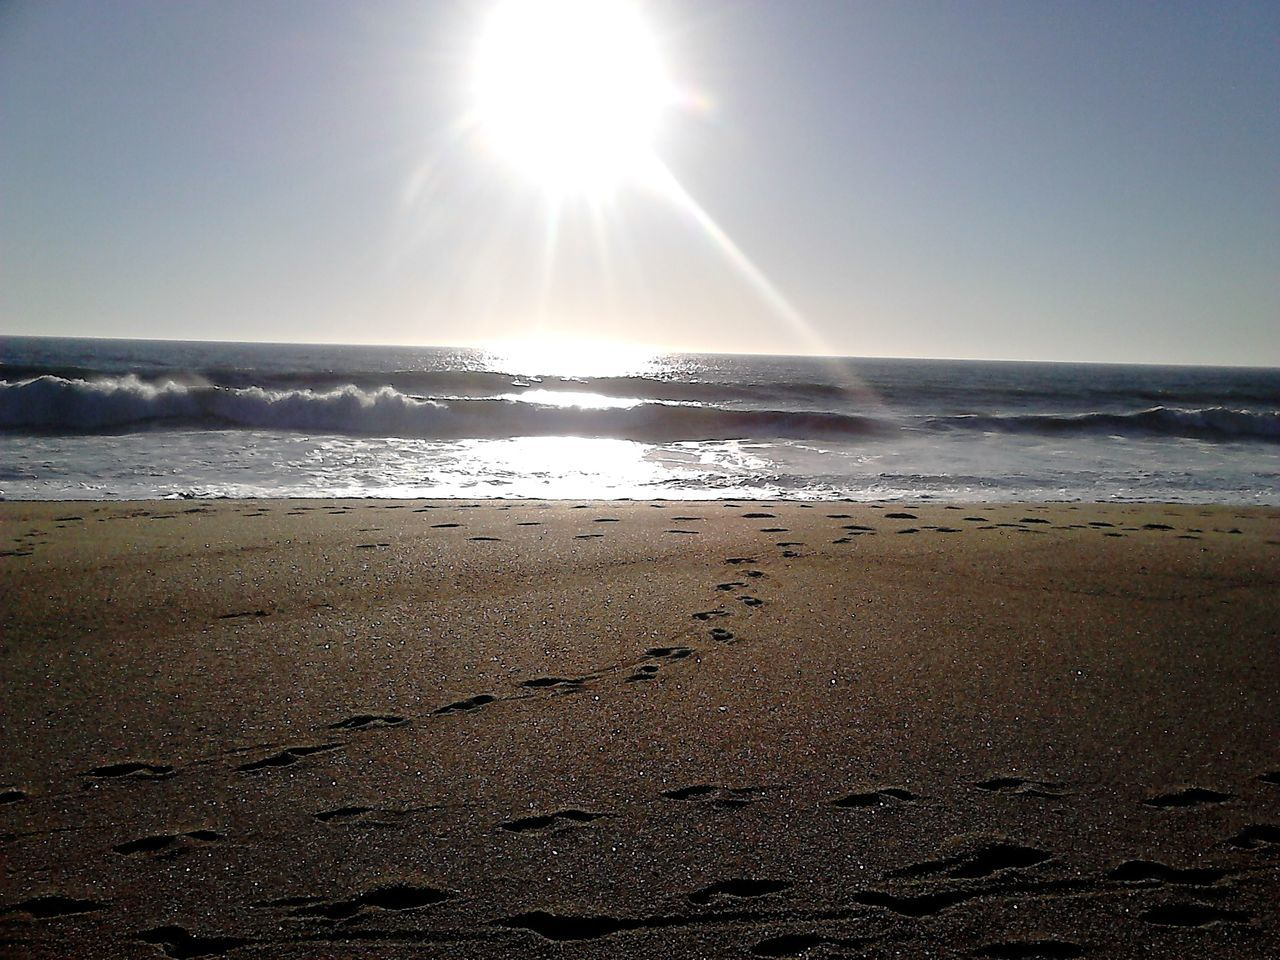 sun, sea, beauty in nature, nature, sunbeam, beach, sunlight, scenics, lens flare, tranquility, sand, water, sky, tranquil scene, horizon over water, no people, outdoors, sunset, day, wave